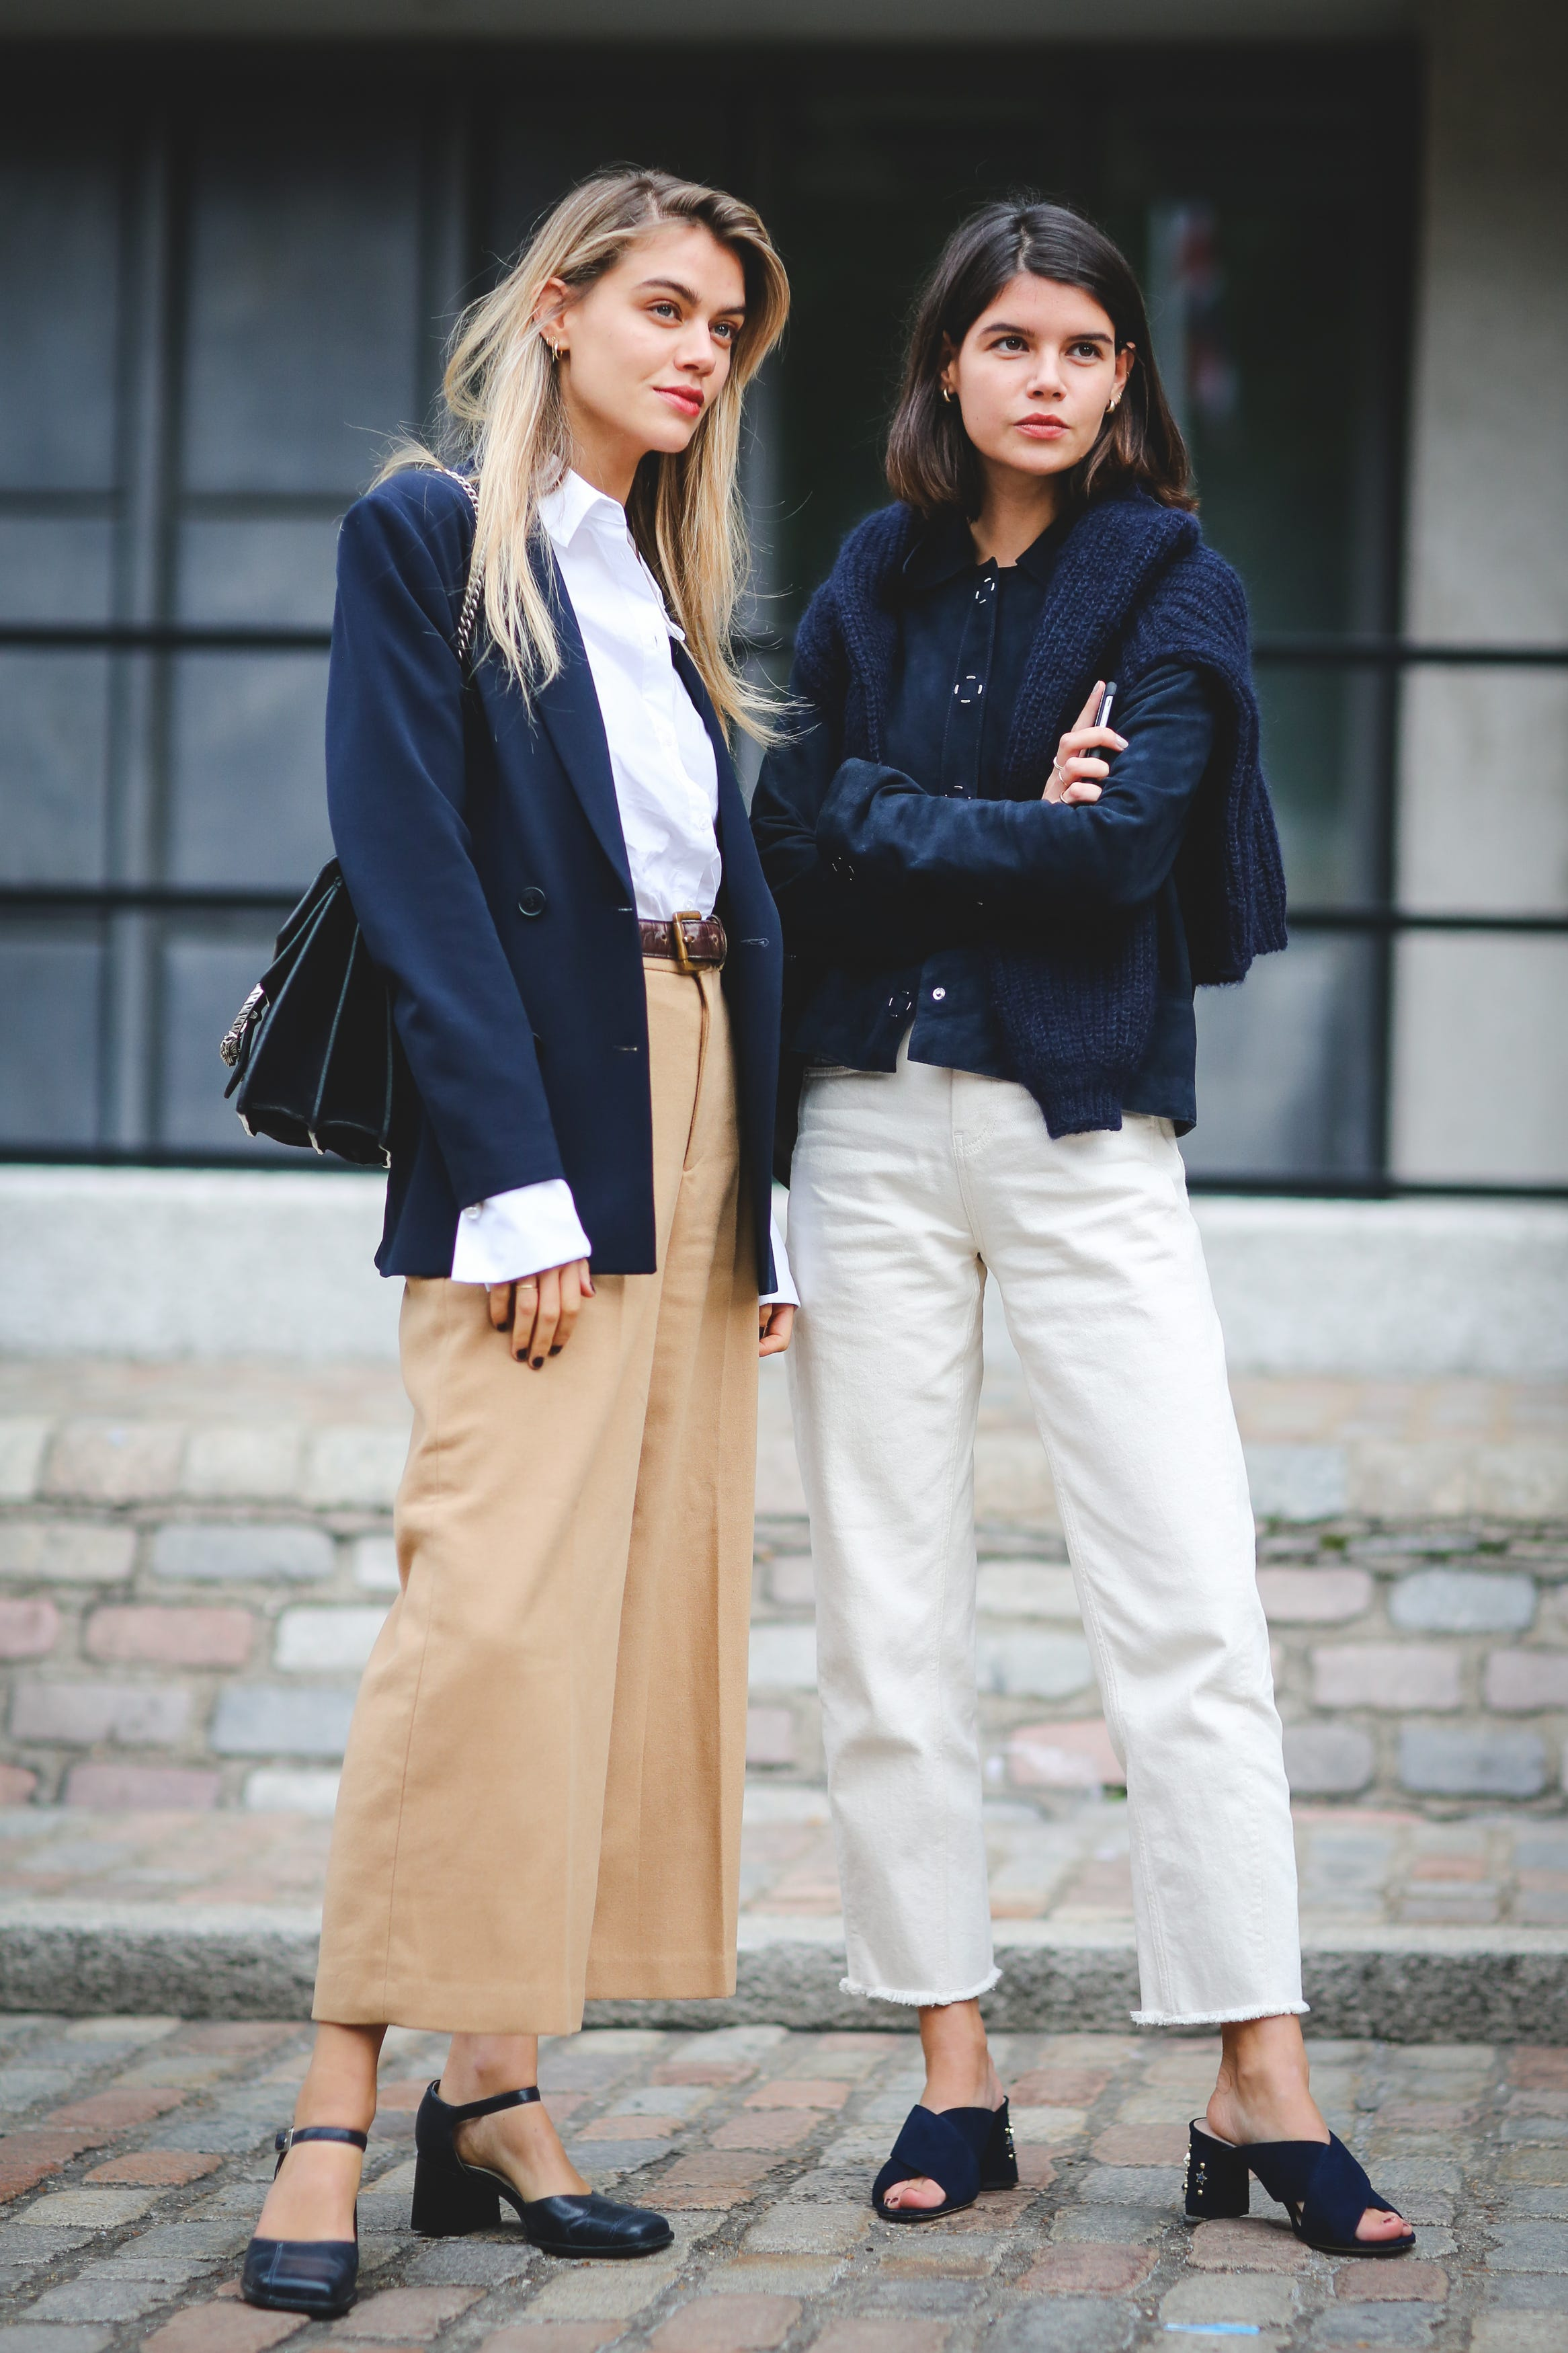 c15bf2c8db6 London Fashion Week Street Style Is All About The High-Low